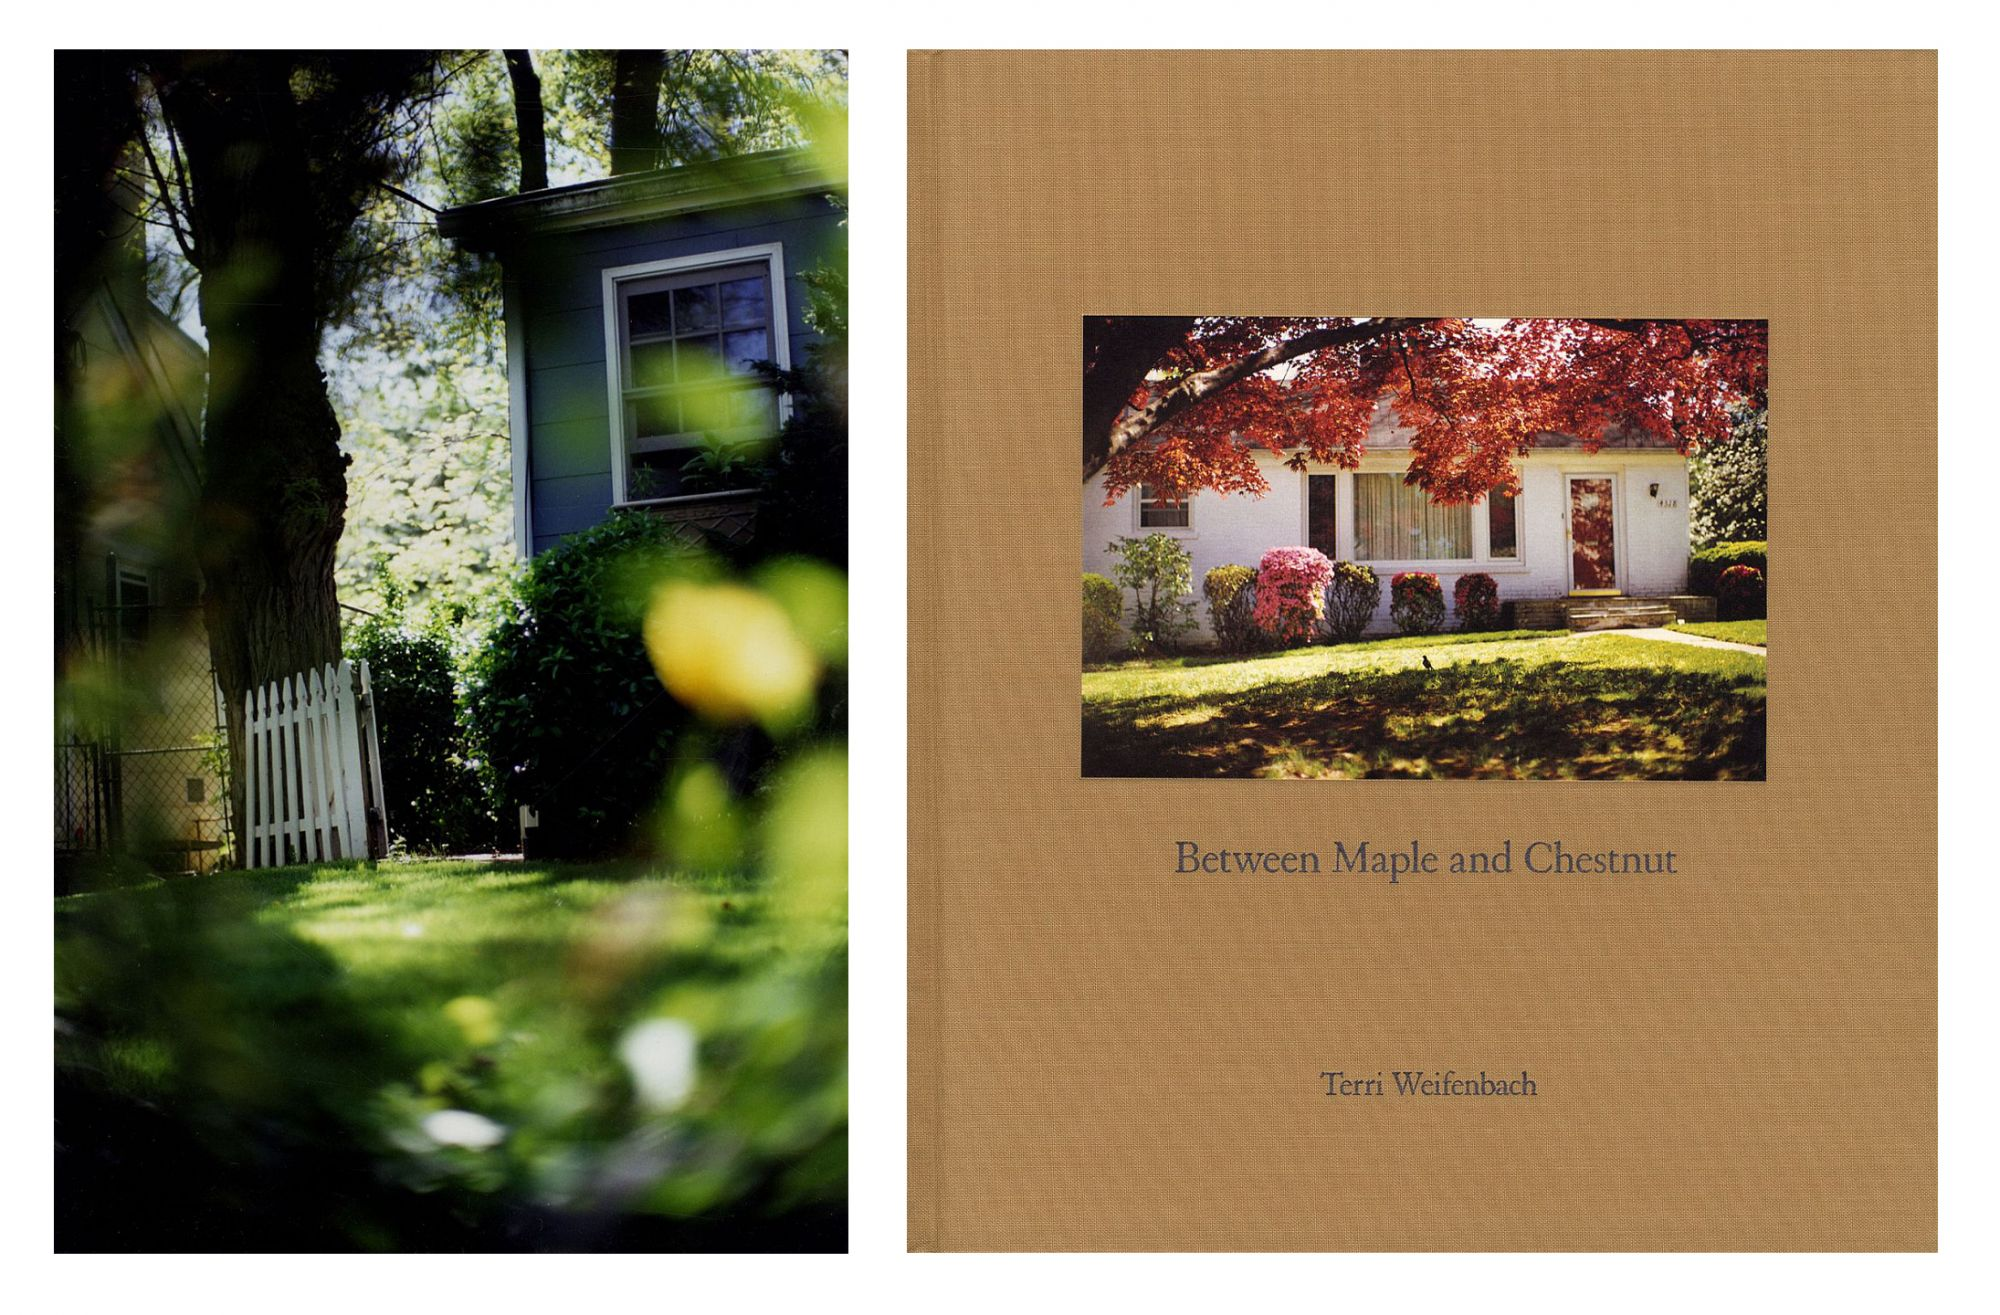 Terri Weifenbach: Between Maple and Chestnut, Deluxe Limited Edition (with Type-C Print)